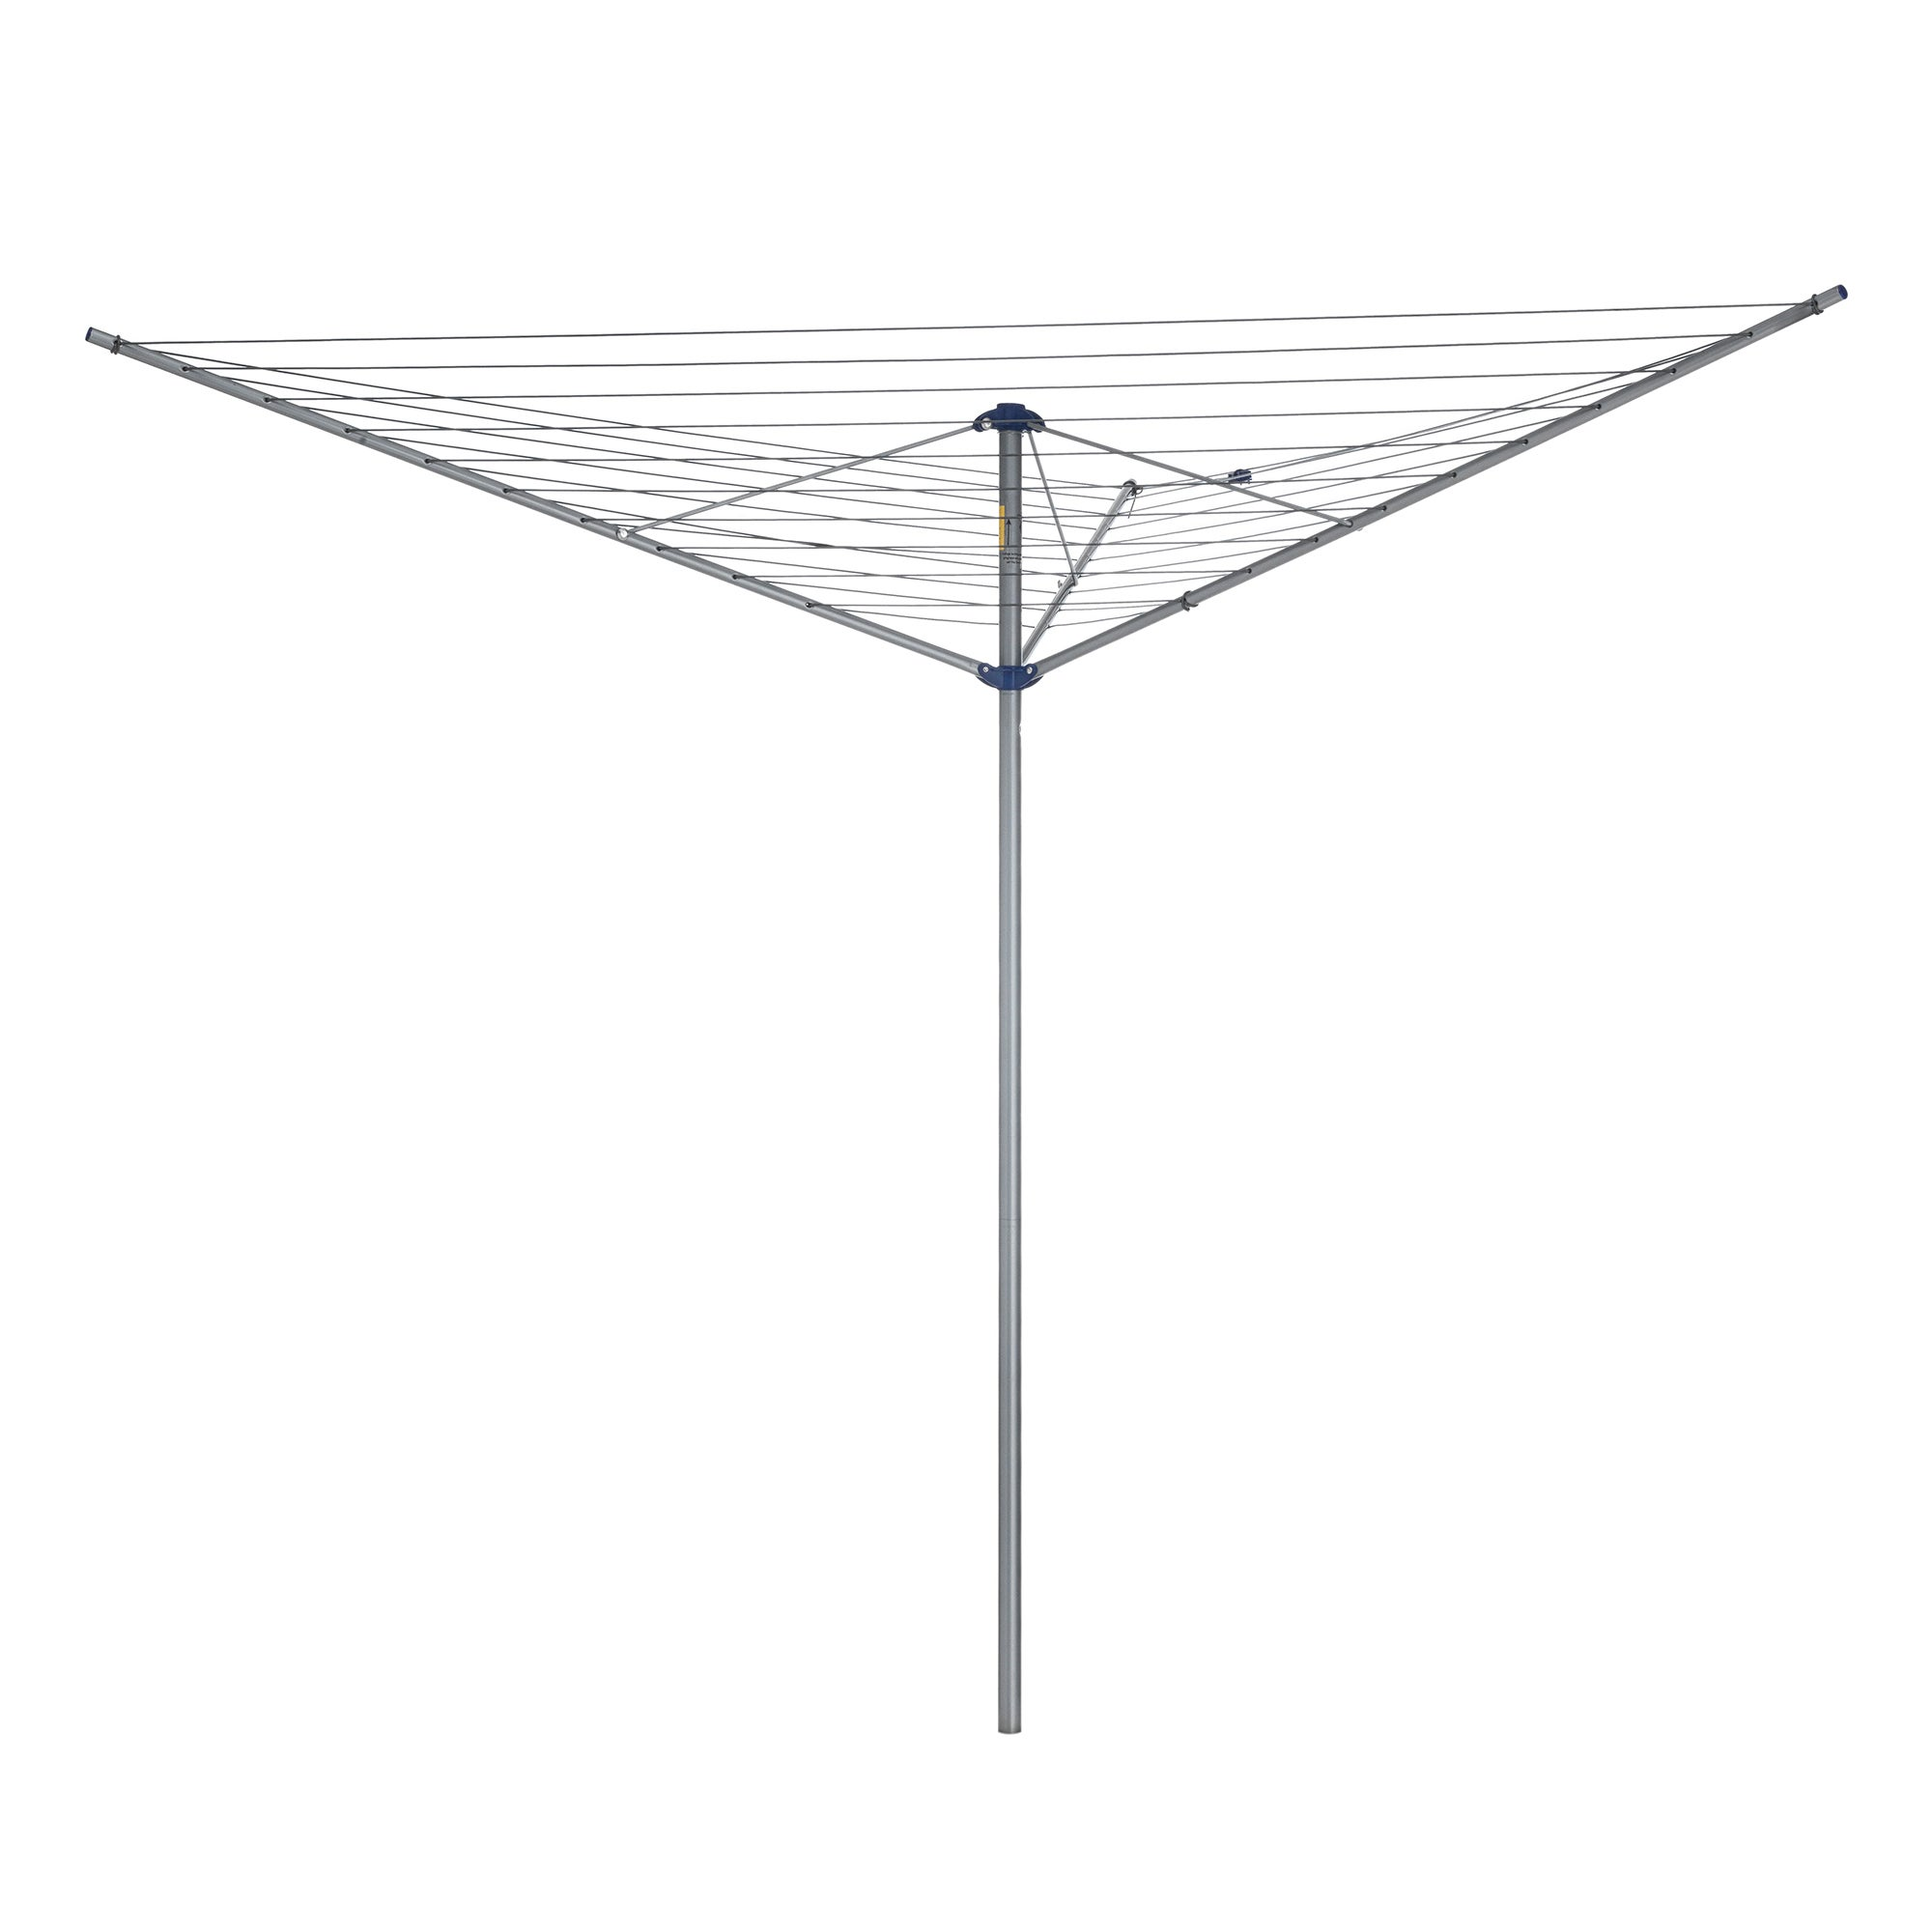 Photo of Utility room rotary drier silver -grey-